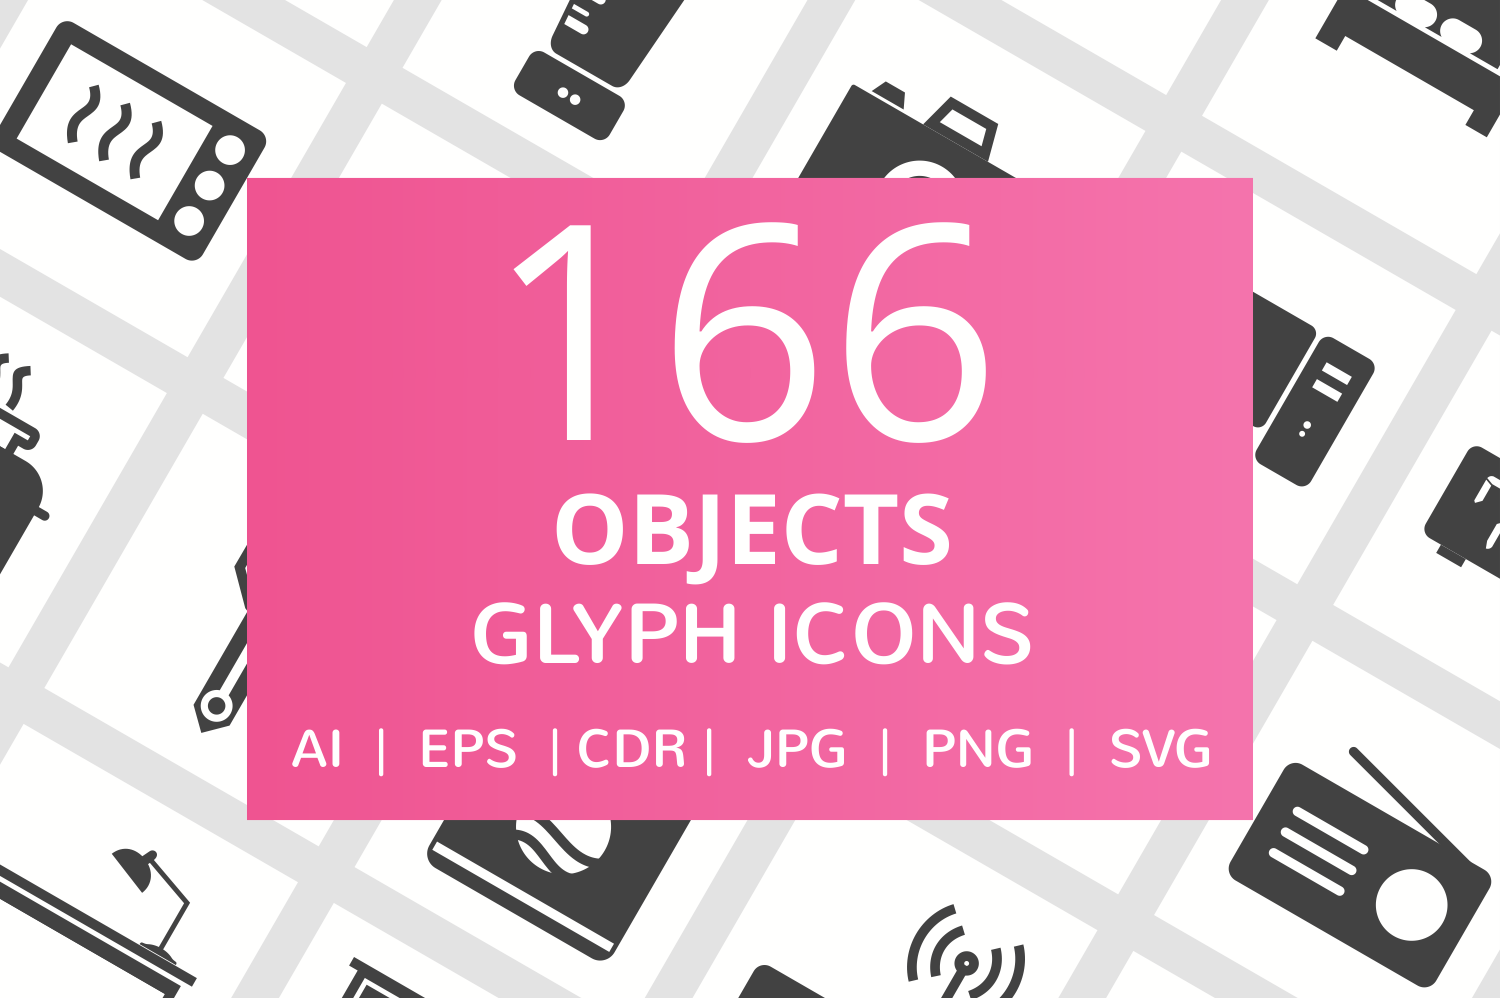 166 Objects Glyph Icons example image 1